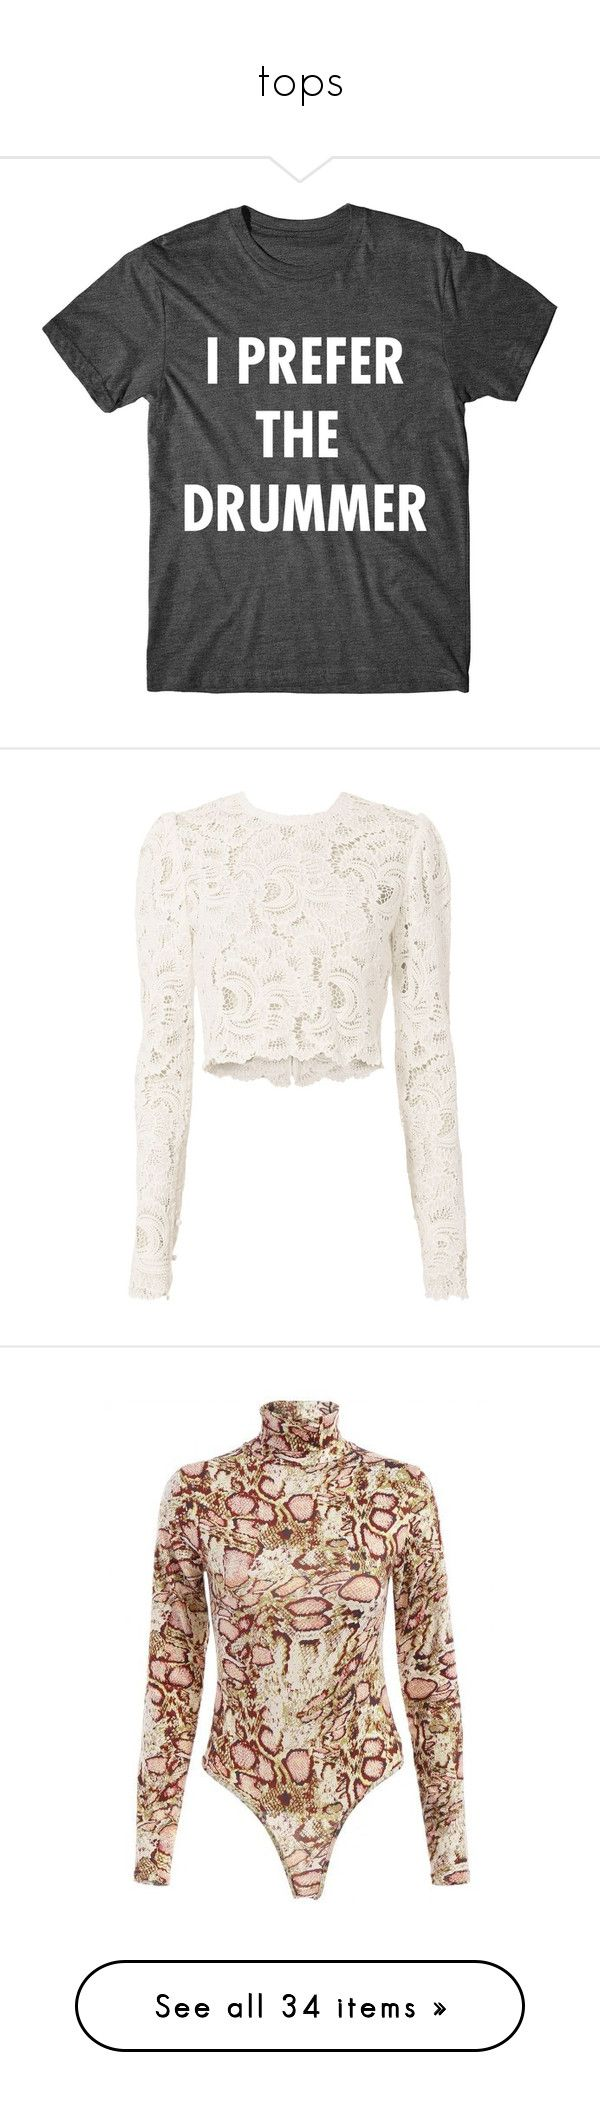 """""""tops"""" by ellesay ❤ liked on Polyvore featuring tops, t-shirts, shirts, black, women's clothing, graphic t shirts, sleeve t shirt, metallic gold shirt, graphic print t shirts and metallic gold t shirt"""